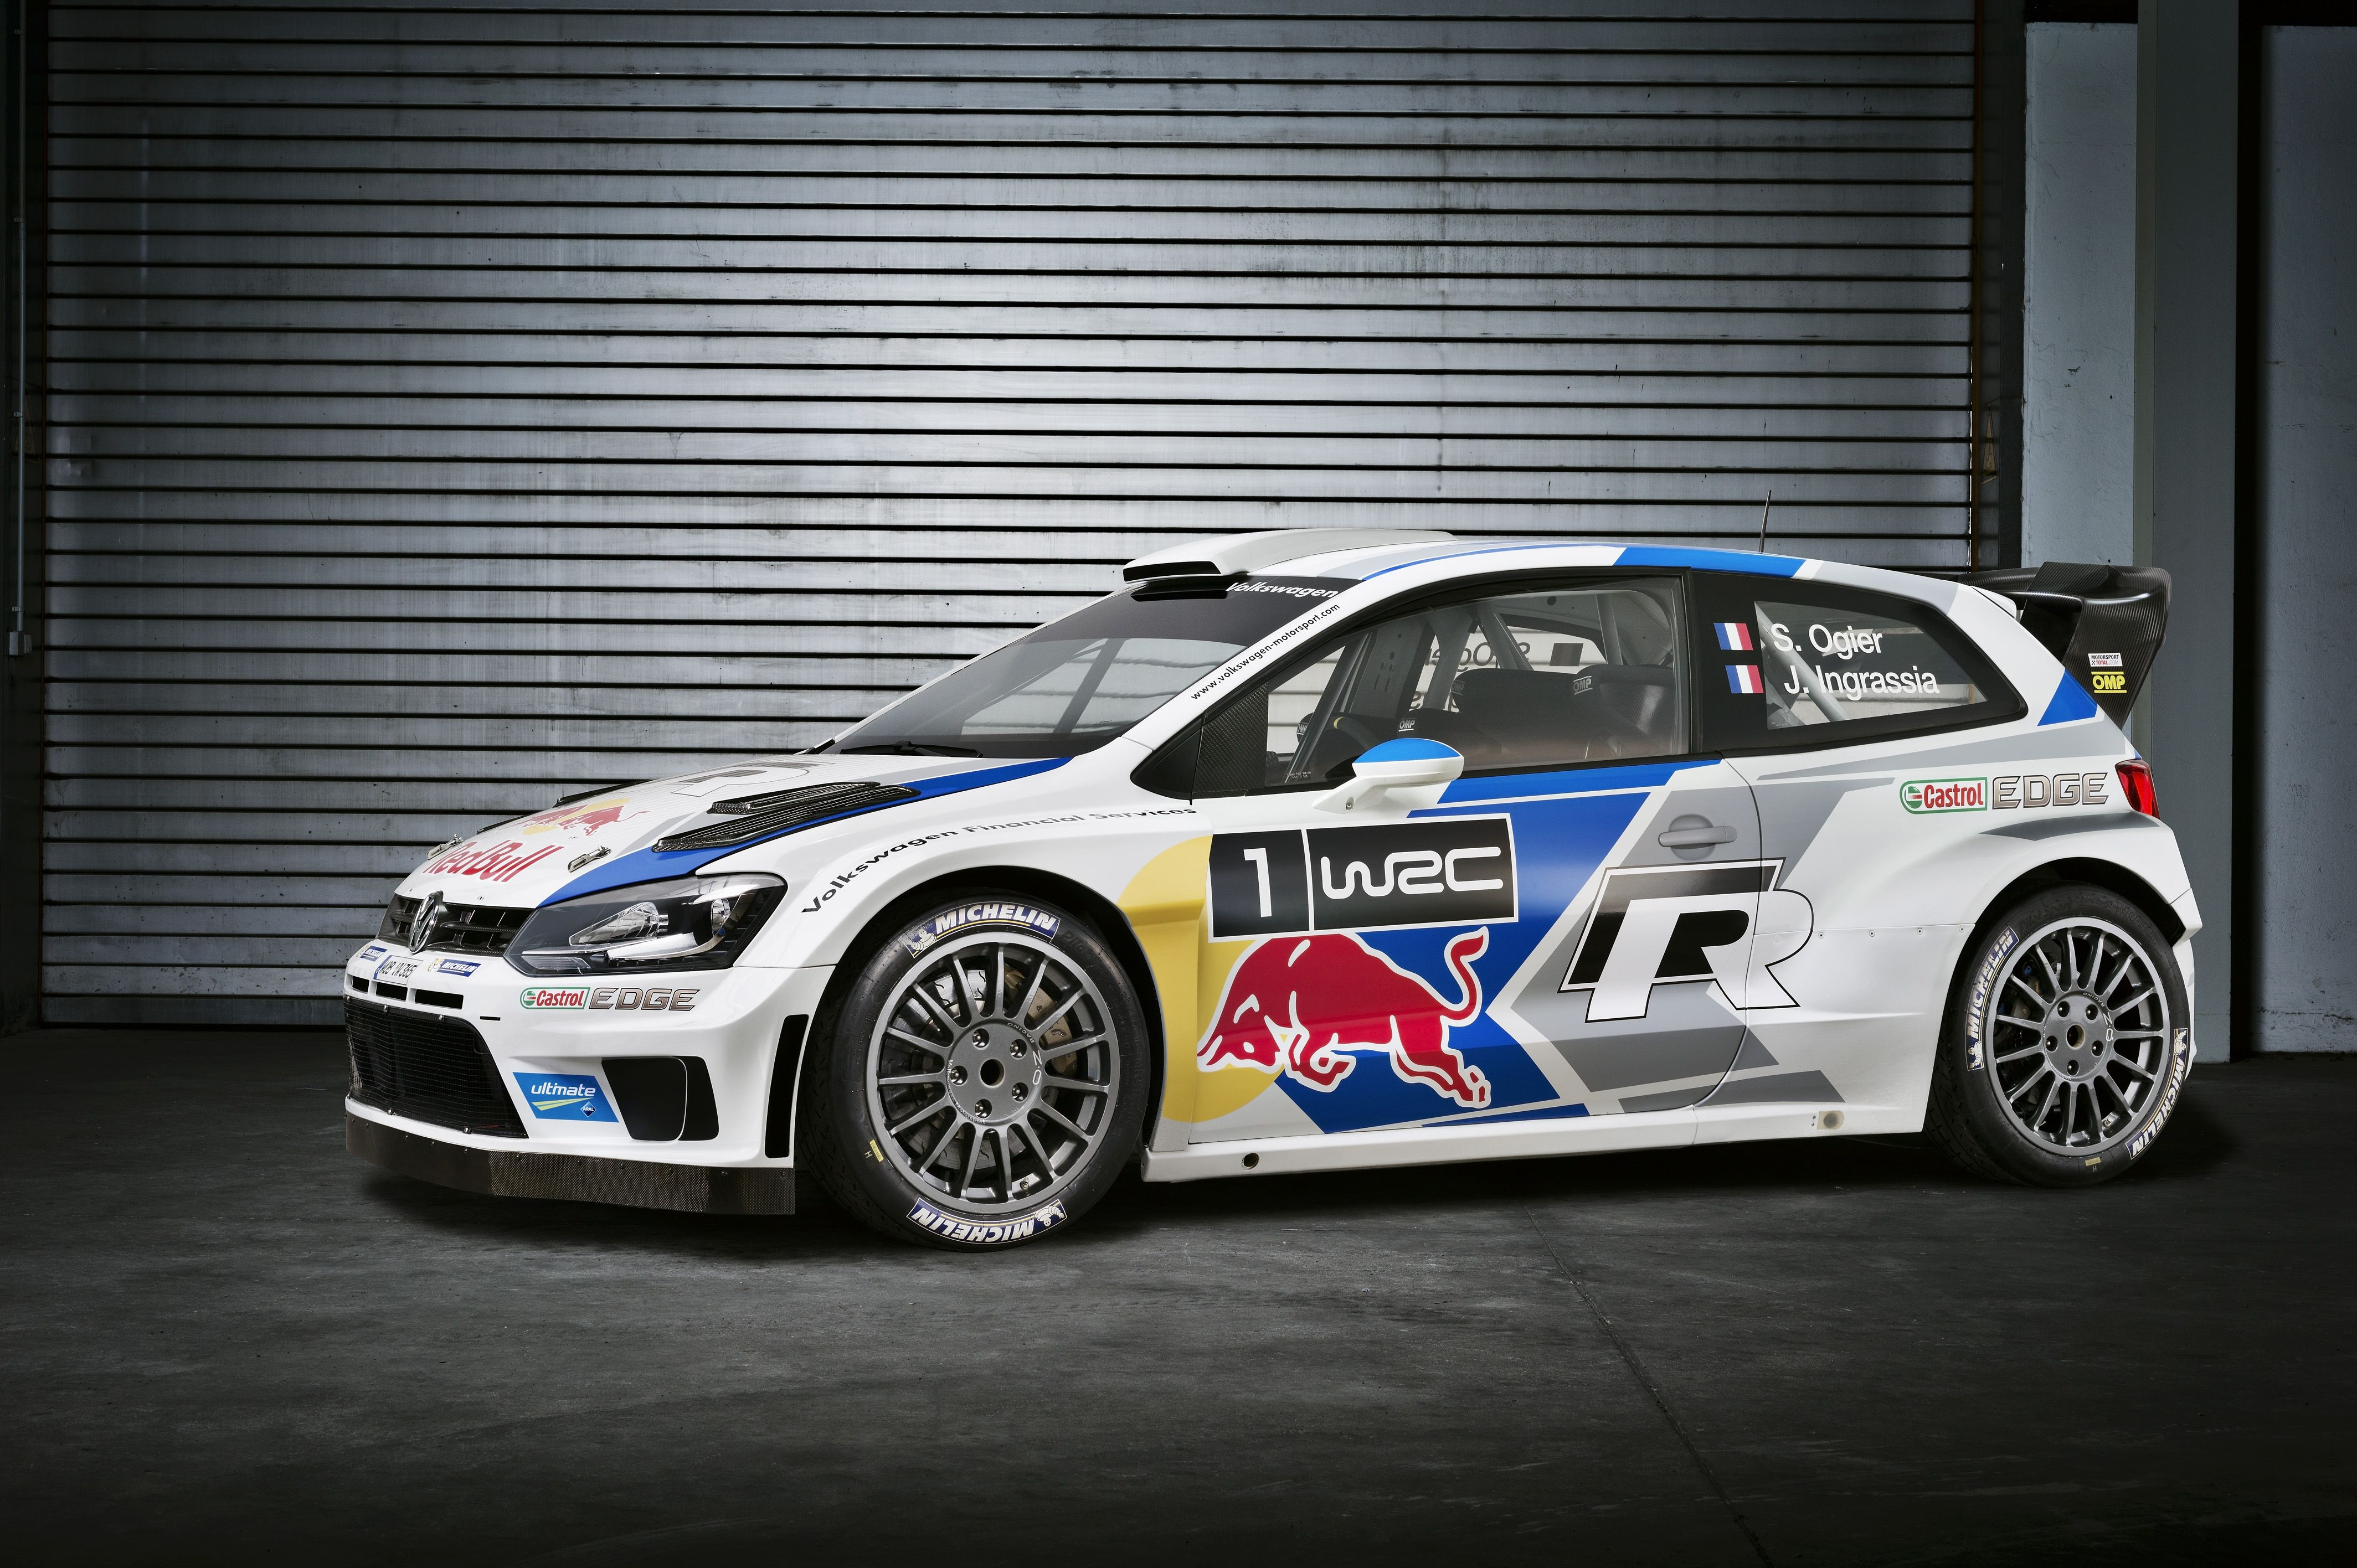 vw motorsport wrc polo r is ready for 2014 season check its wheels ozracing oz motorsports. Black Bedroom Furniture Sets. Home Design Ideas